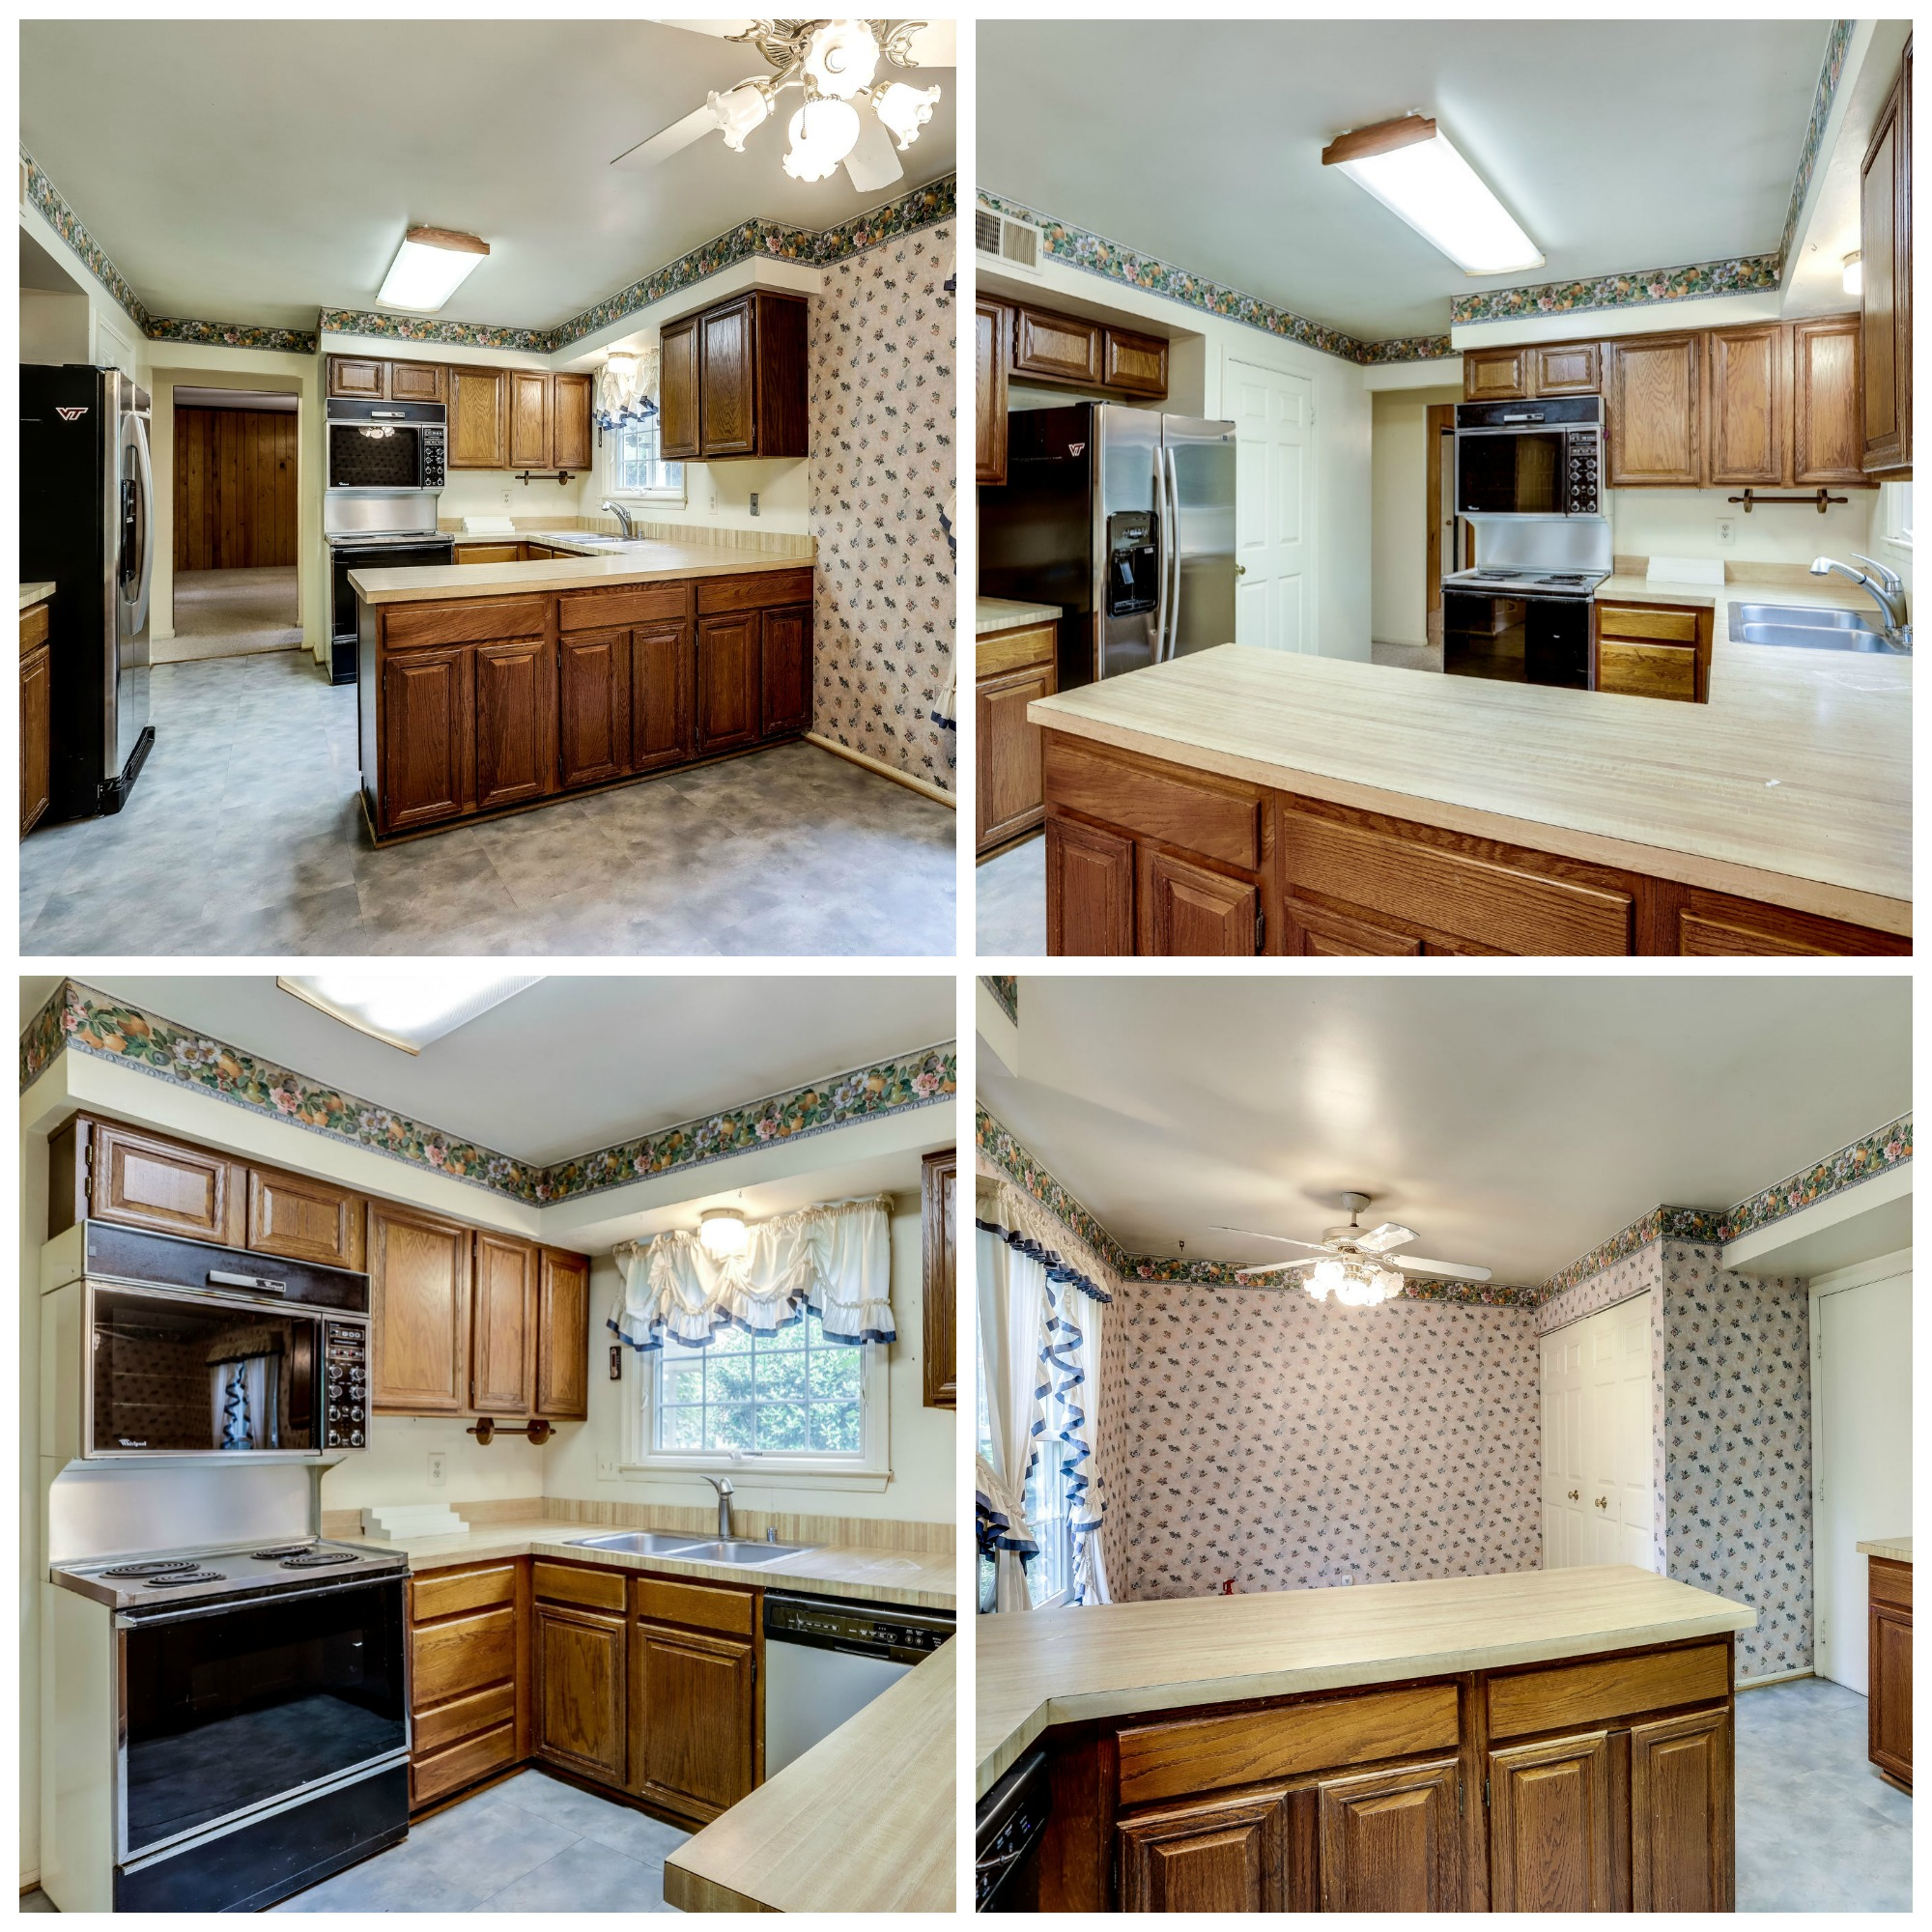 5 Russell Ct, Sterling_ Kitchen 1